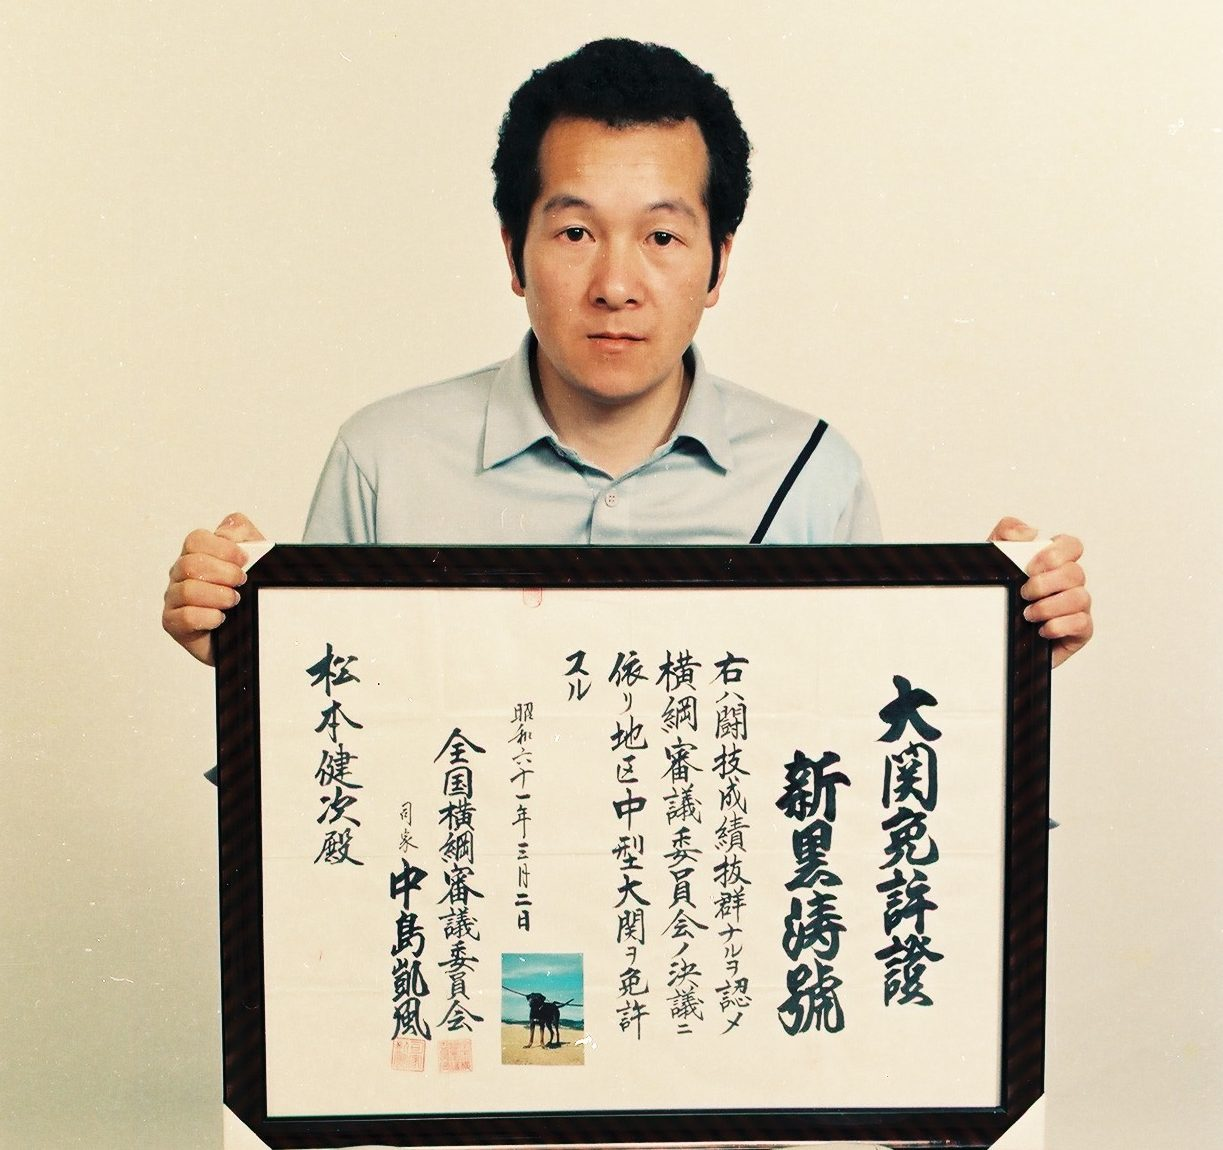 Picture of Kenji Matsumoto, a Japanese death-row inmate